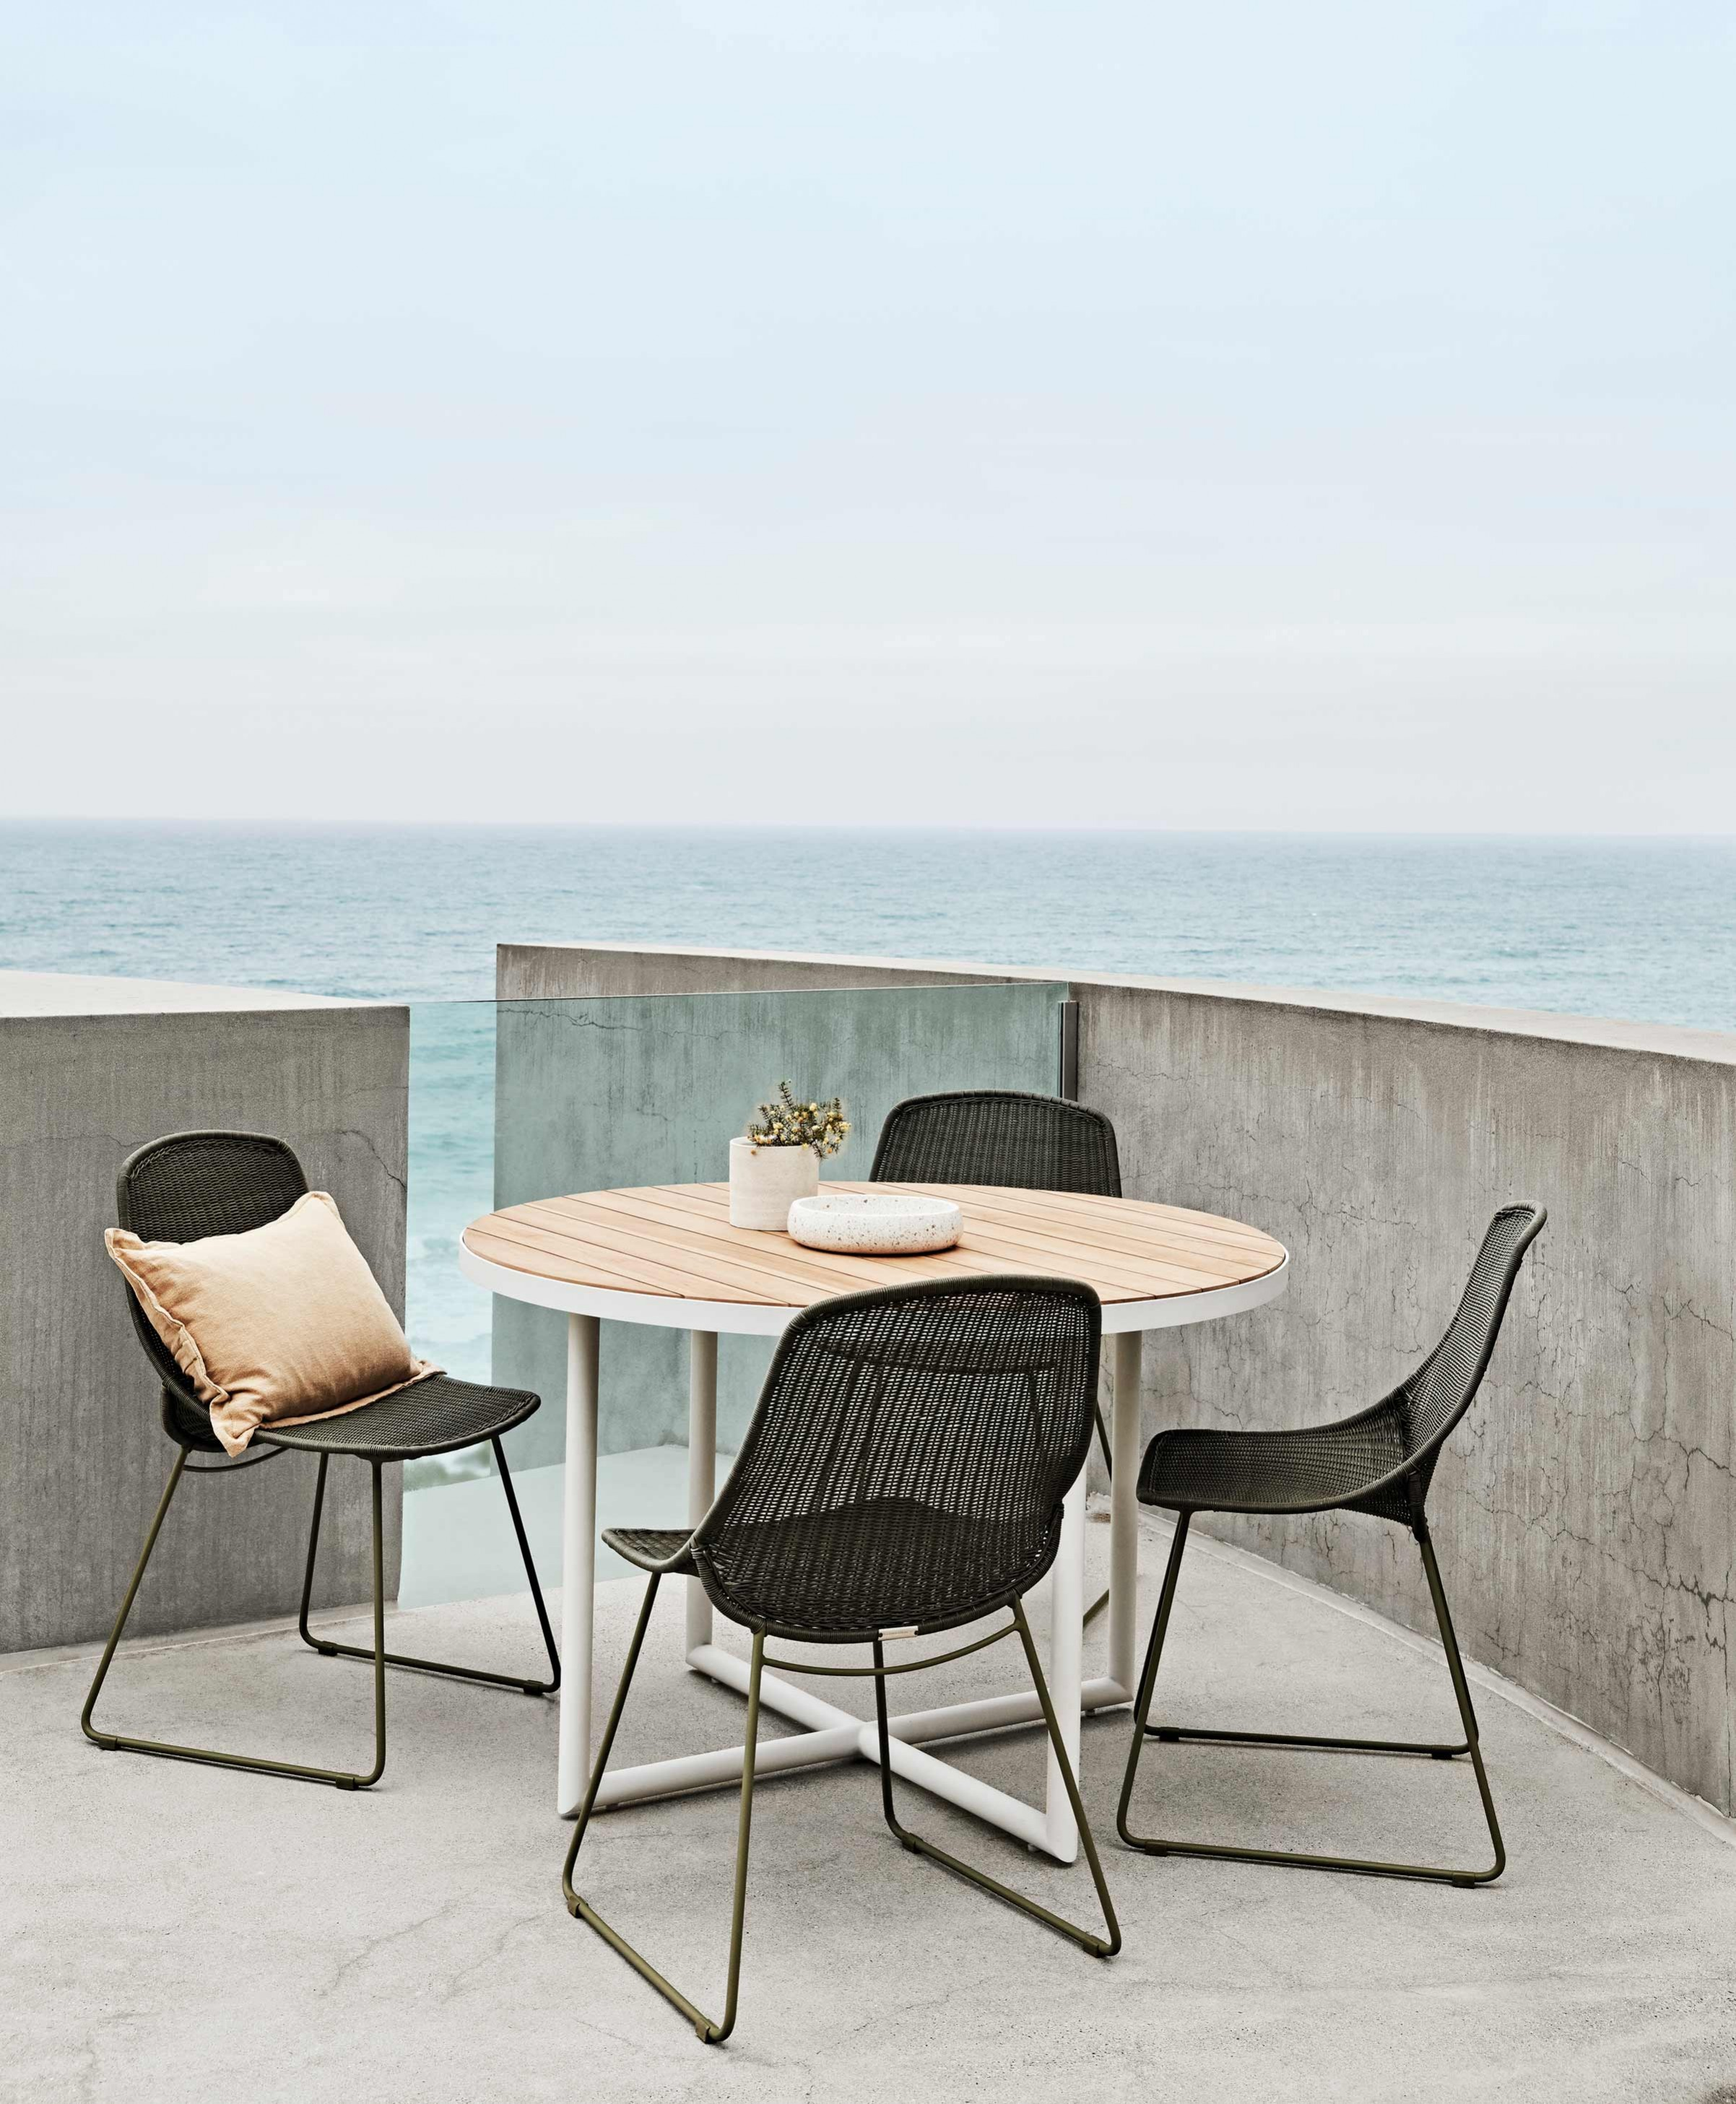 Furniture Hero-Images Occasional-Chairs outdoor-dining-chairs-benches-and-stools-content